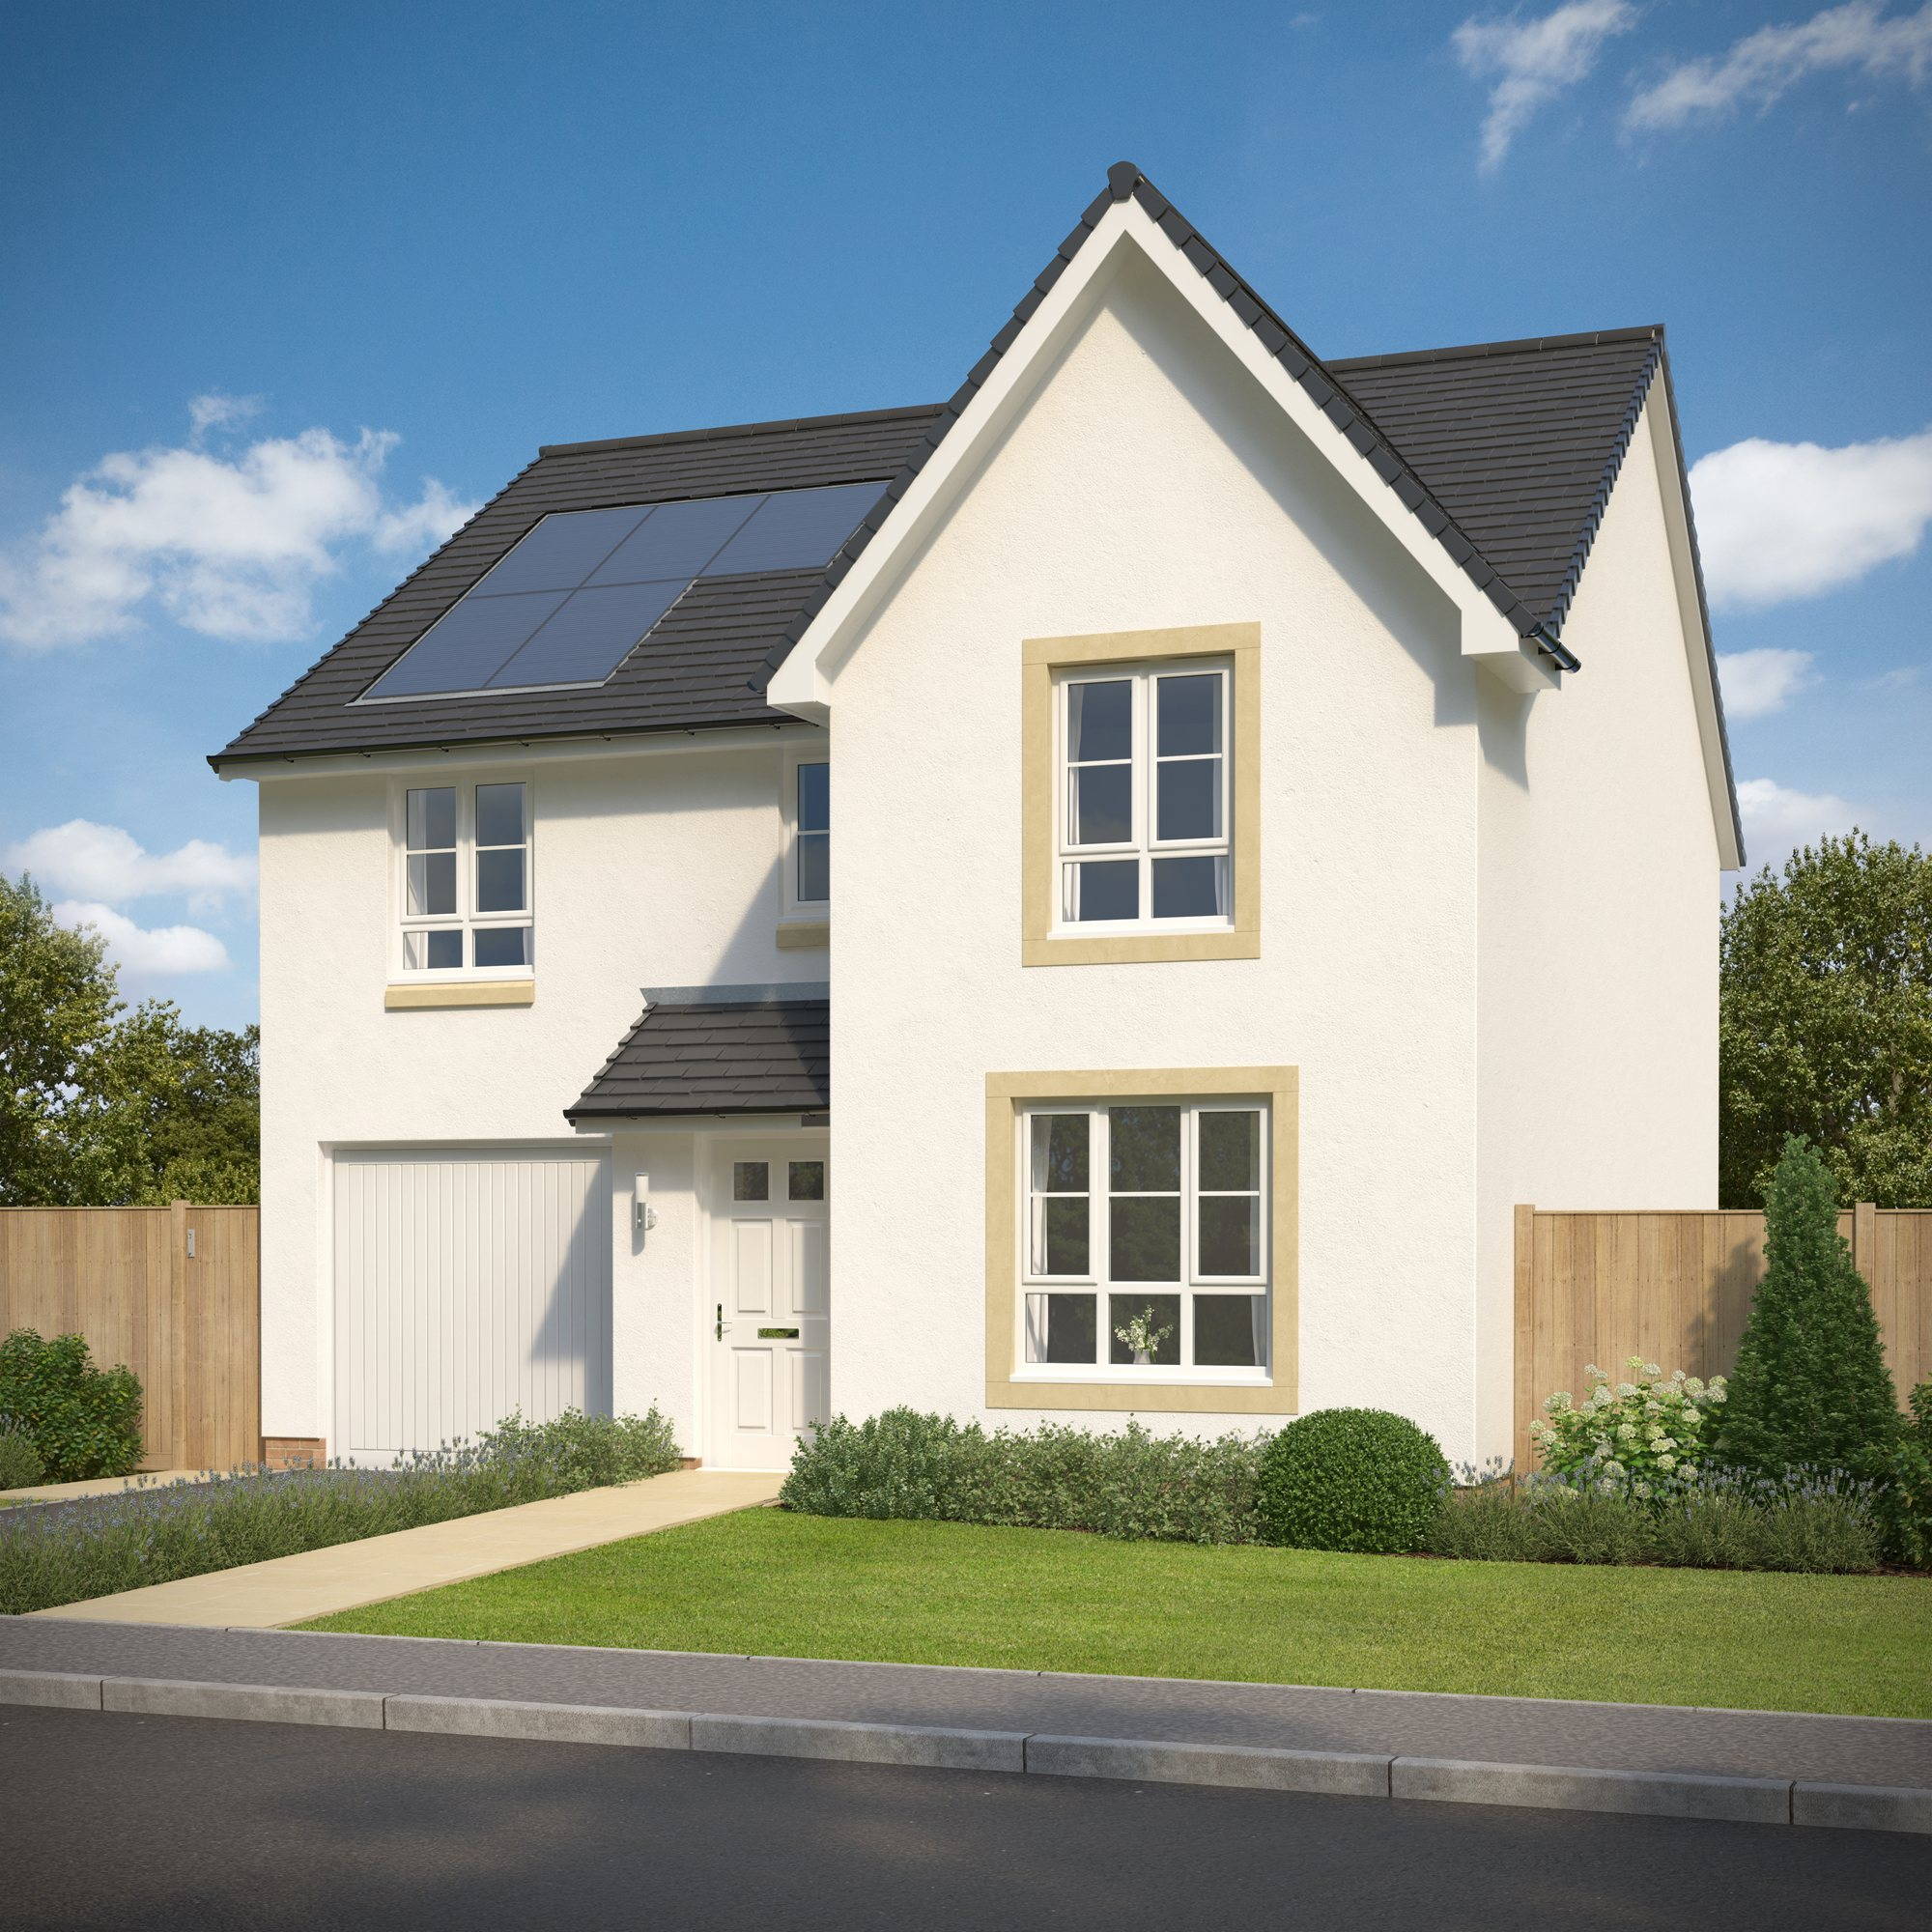 New Build Homes in Livingston